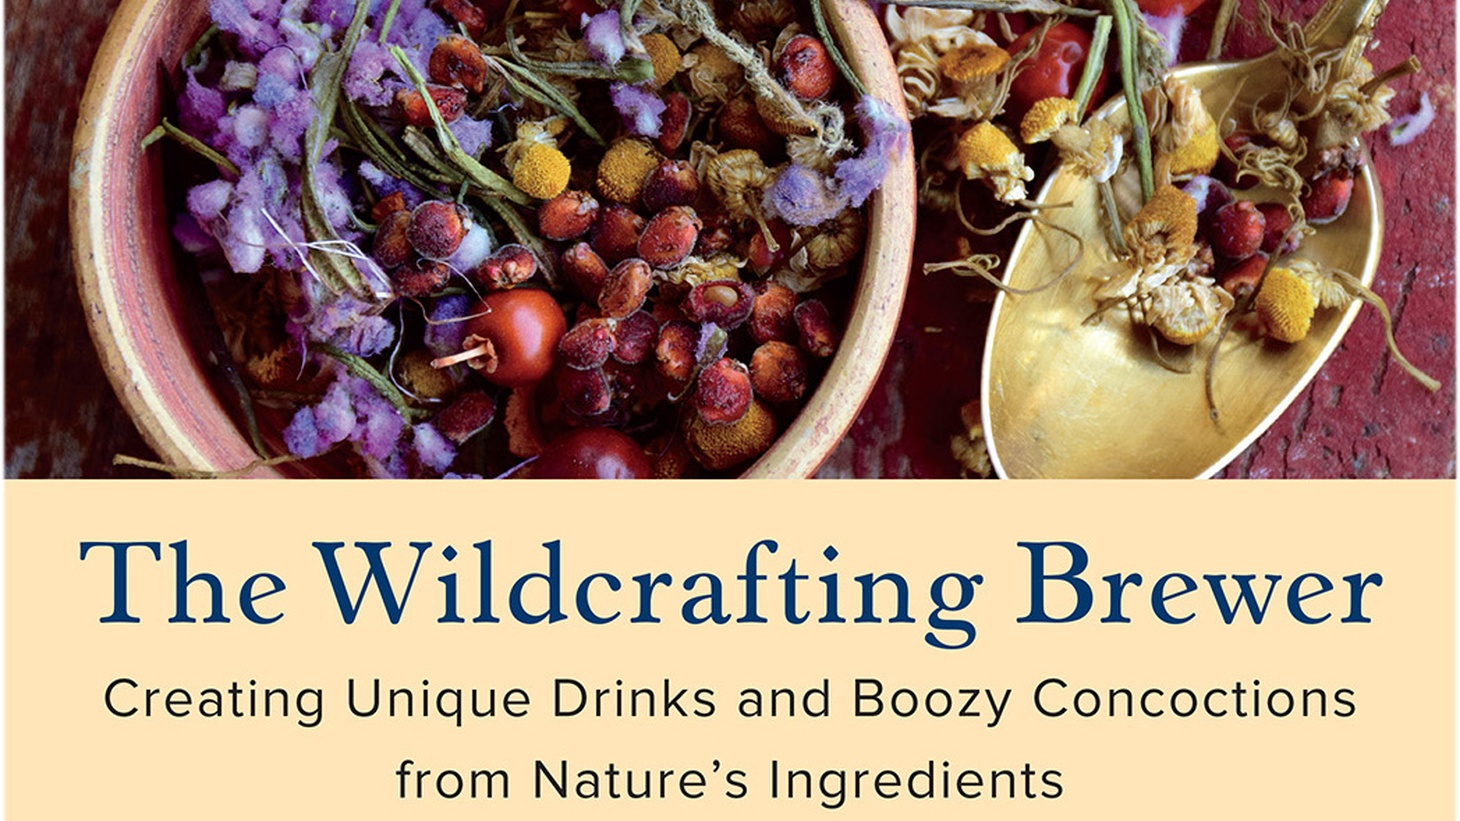 """The Wildcrafting Brewer: Creating Unique Drinks and Boozy Concoctions from Nature's Ingredients"" by Pascal Baudar."